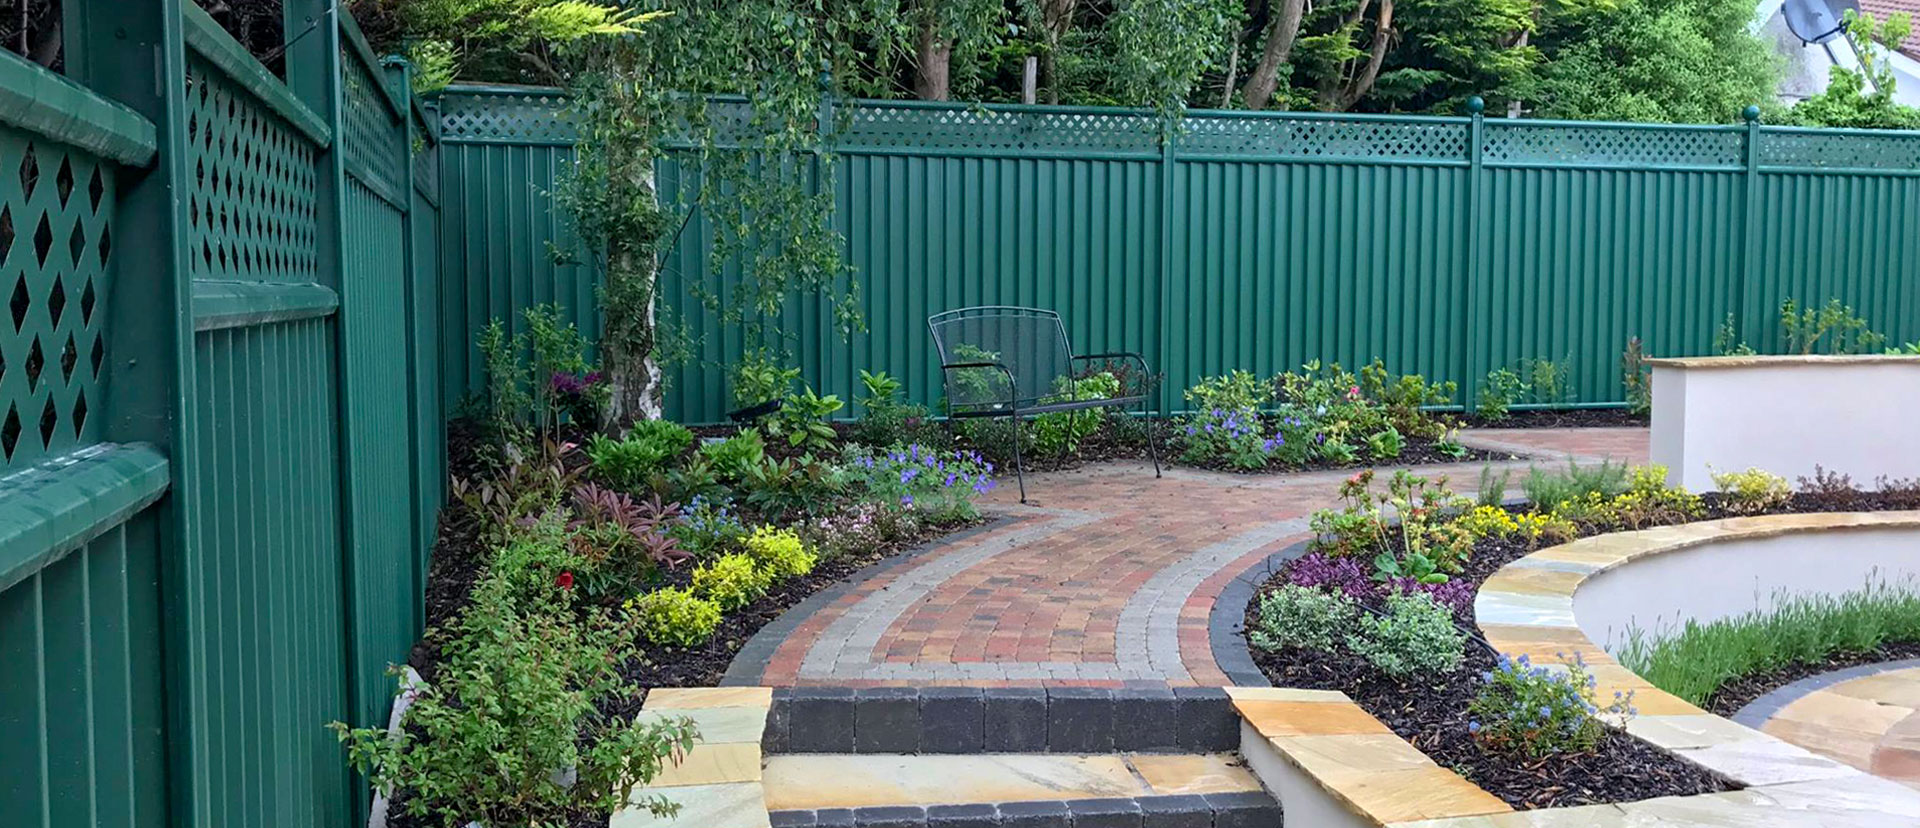 Give Your Garden a New Look With ColourFence